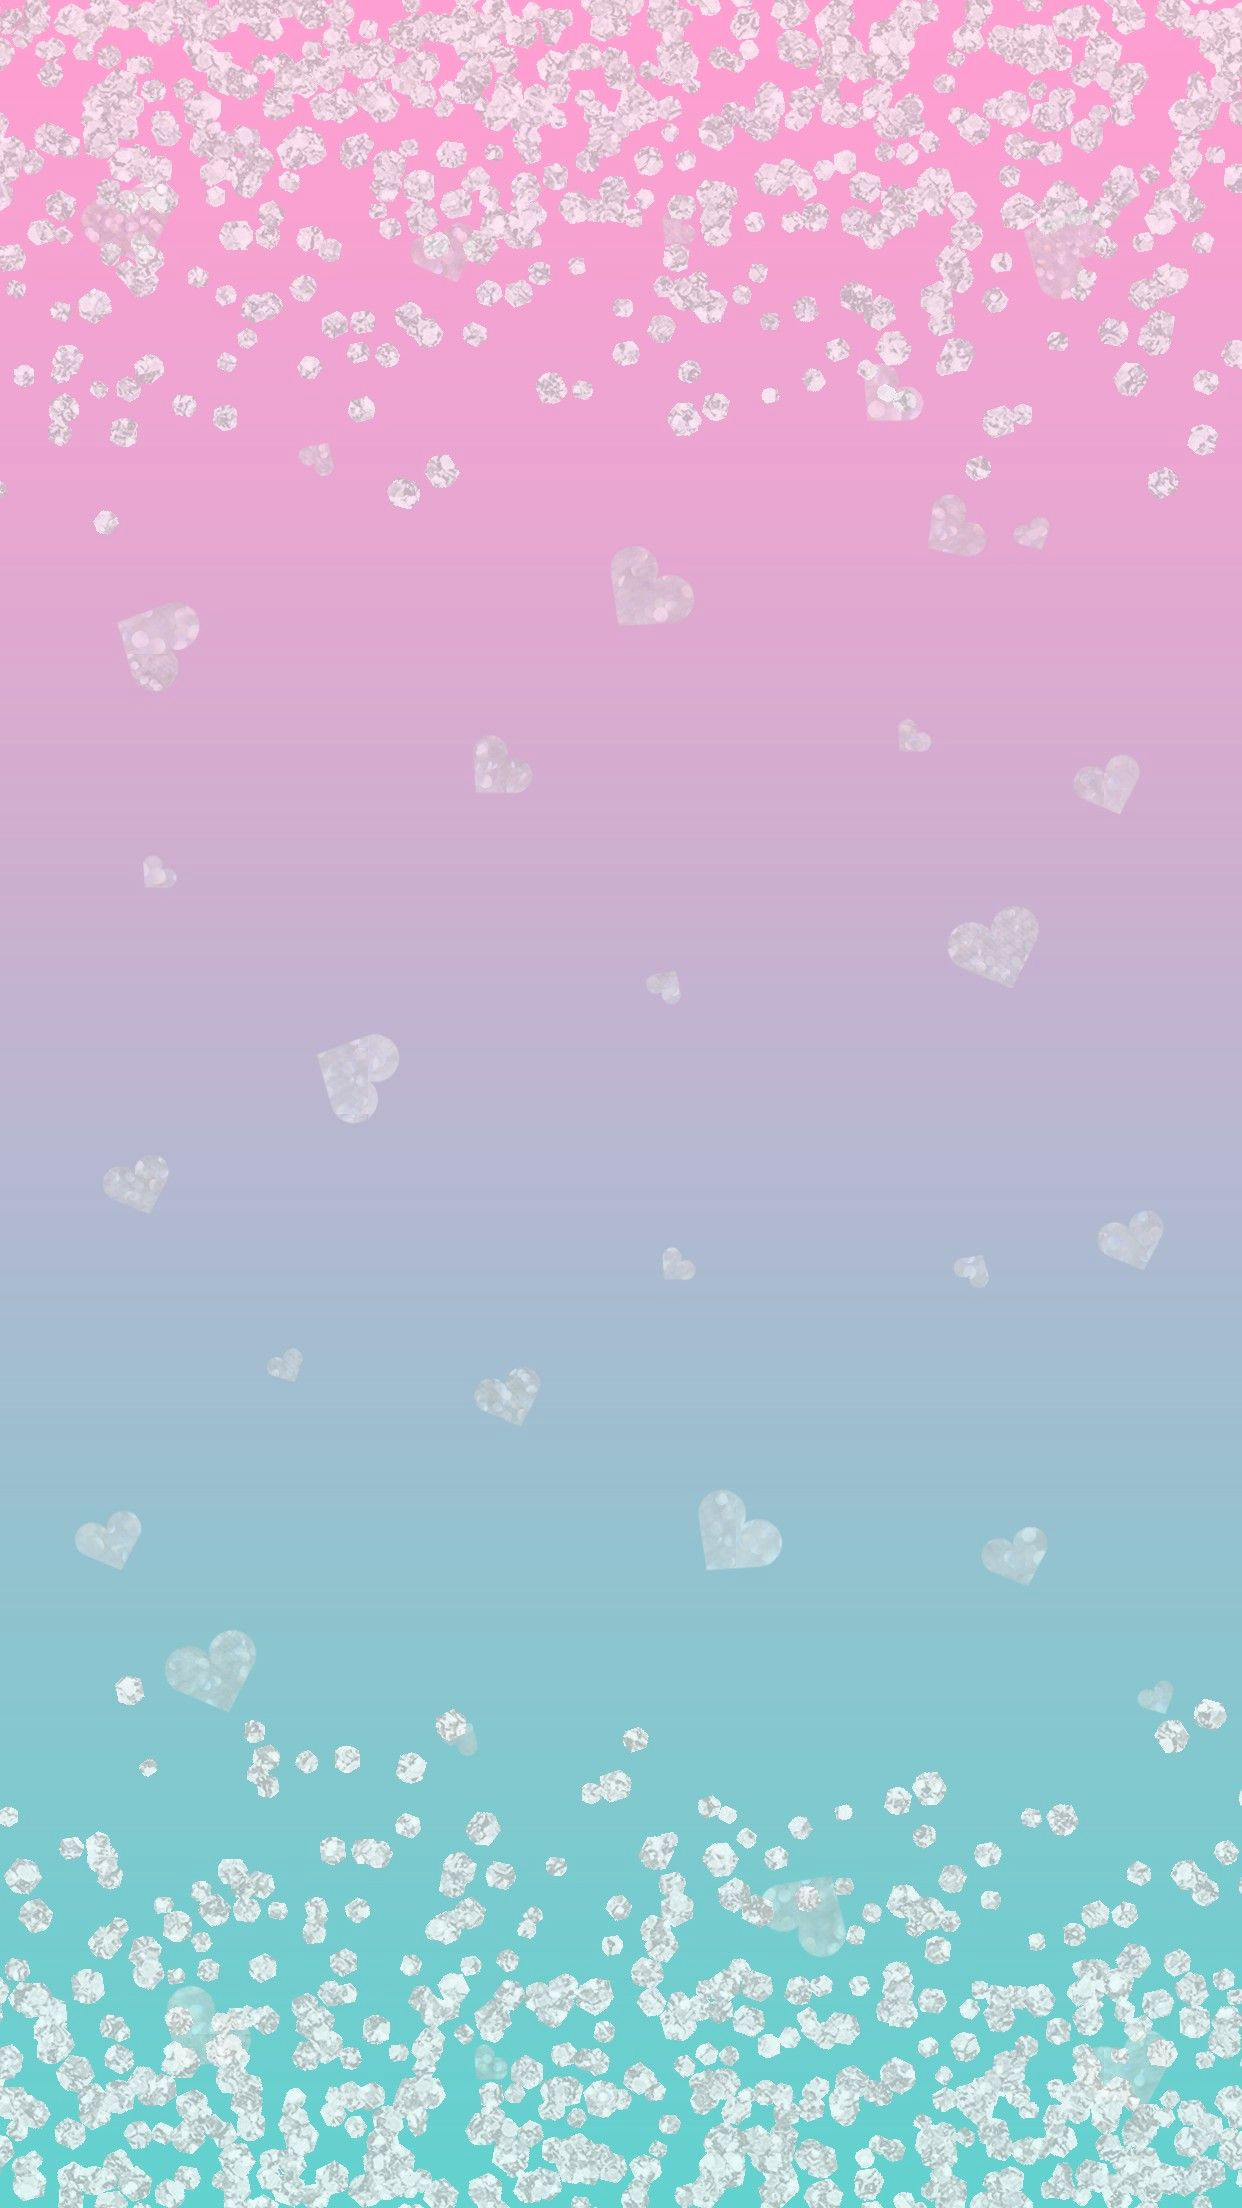 1246661 free cute pink wallpapers for iphone 1242x2208 720p